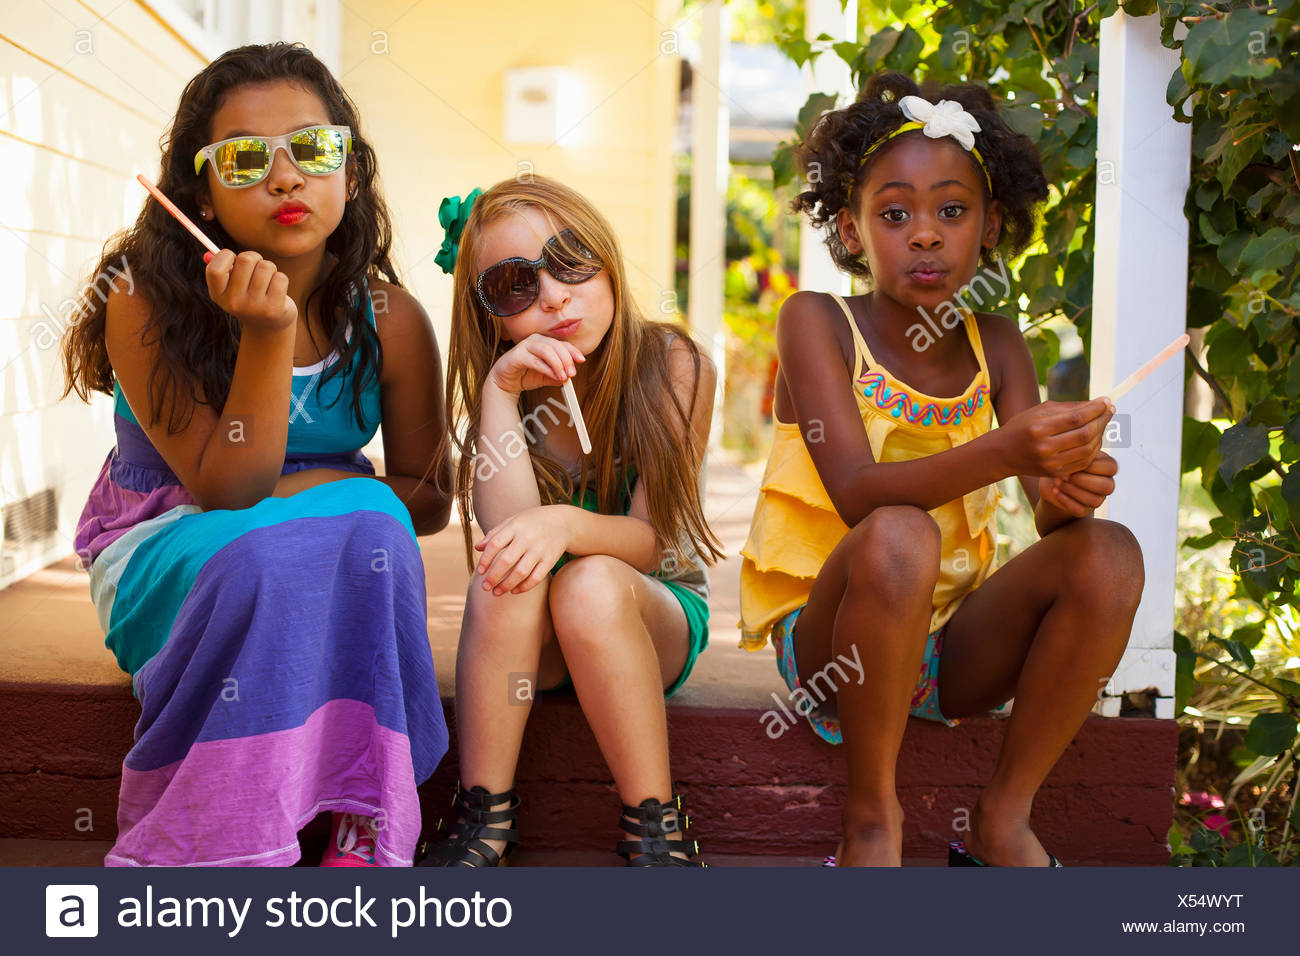 Three girls pulling faces on porch - Stock Image